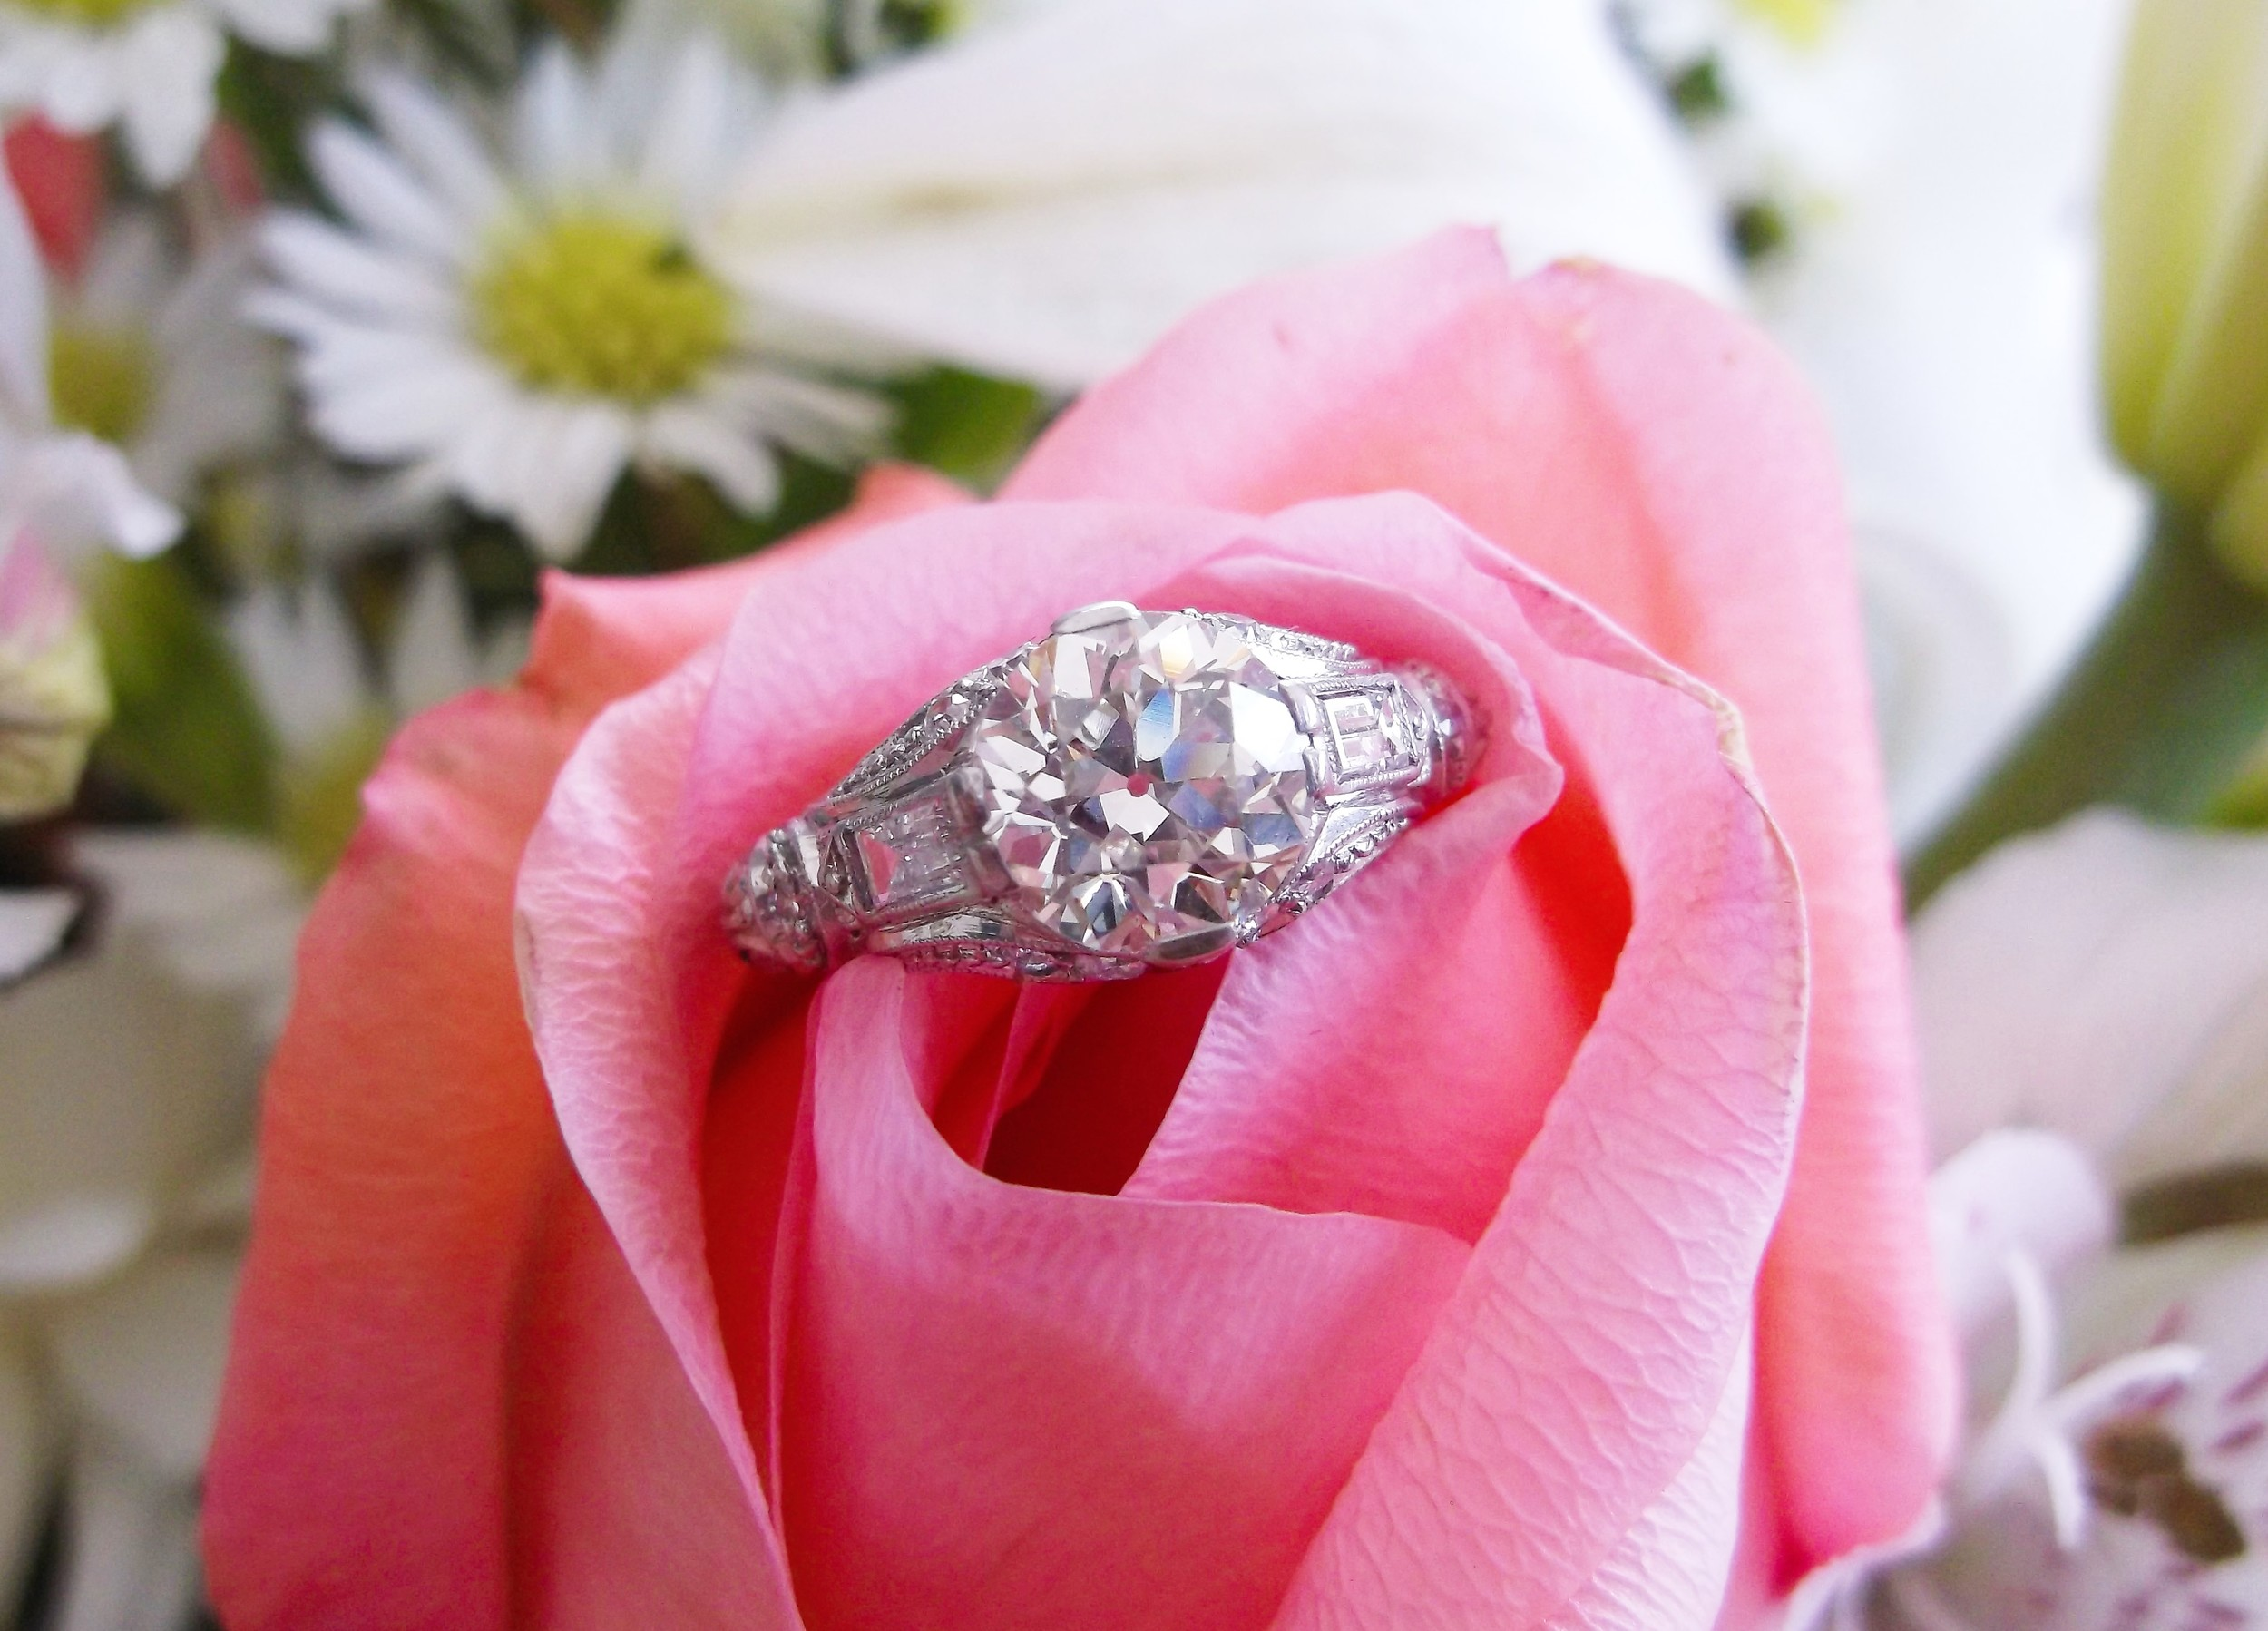 SOLD - Gorgeous 1.54 carat Old European cut diamond set in a beautiful platinum and diamond detail mounting.